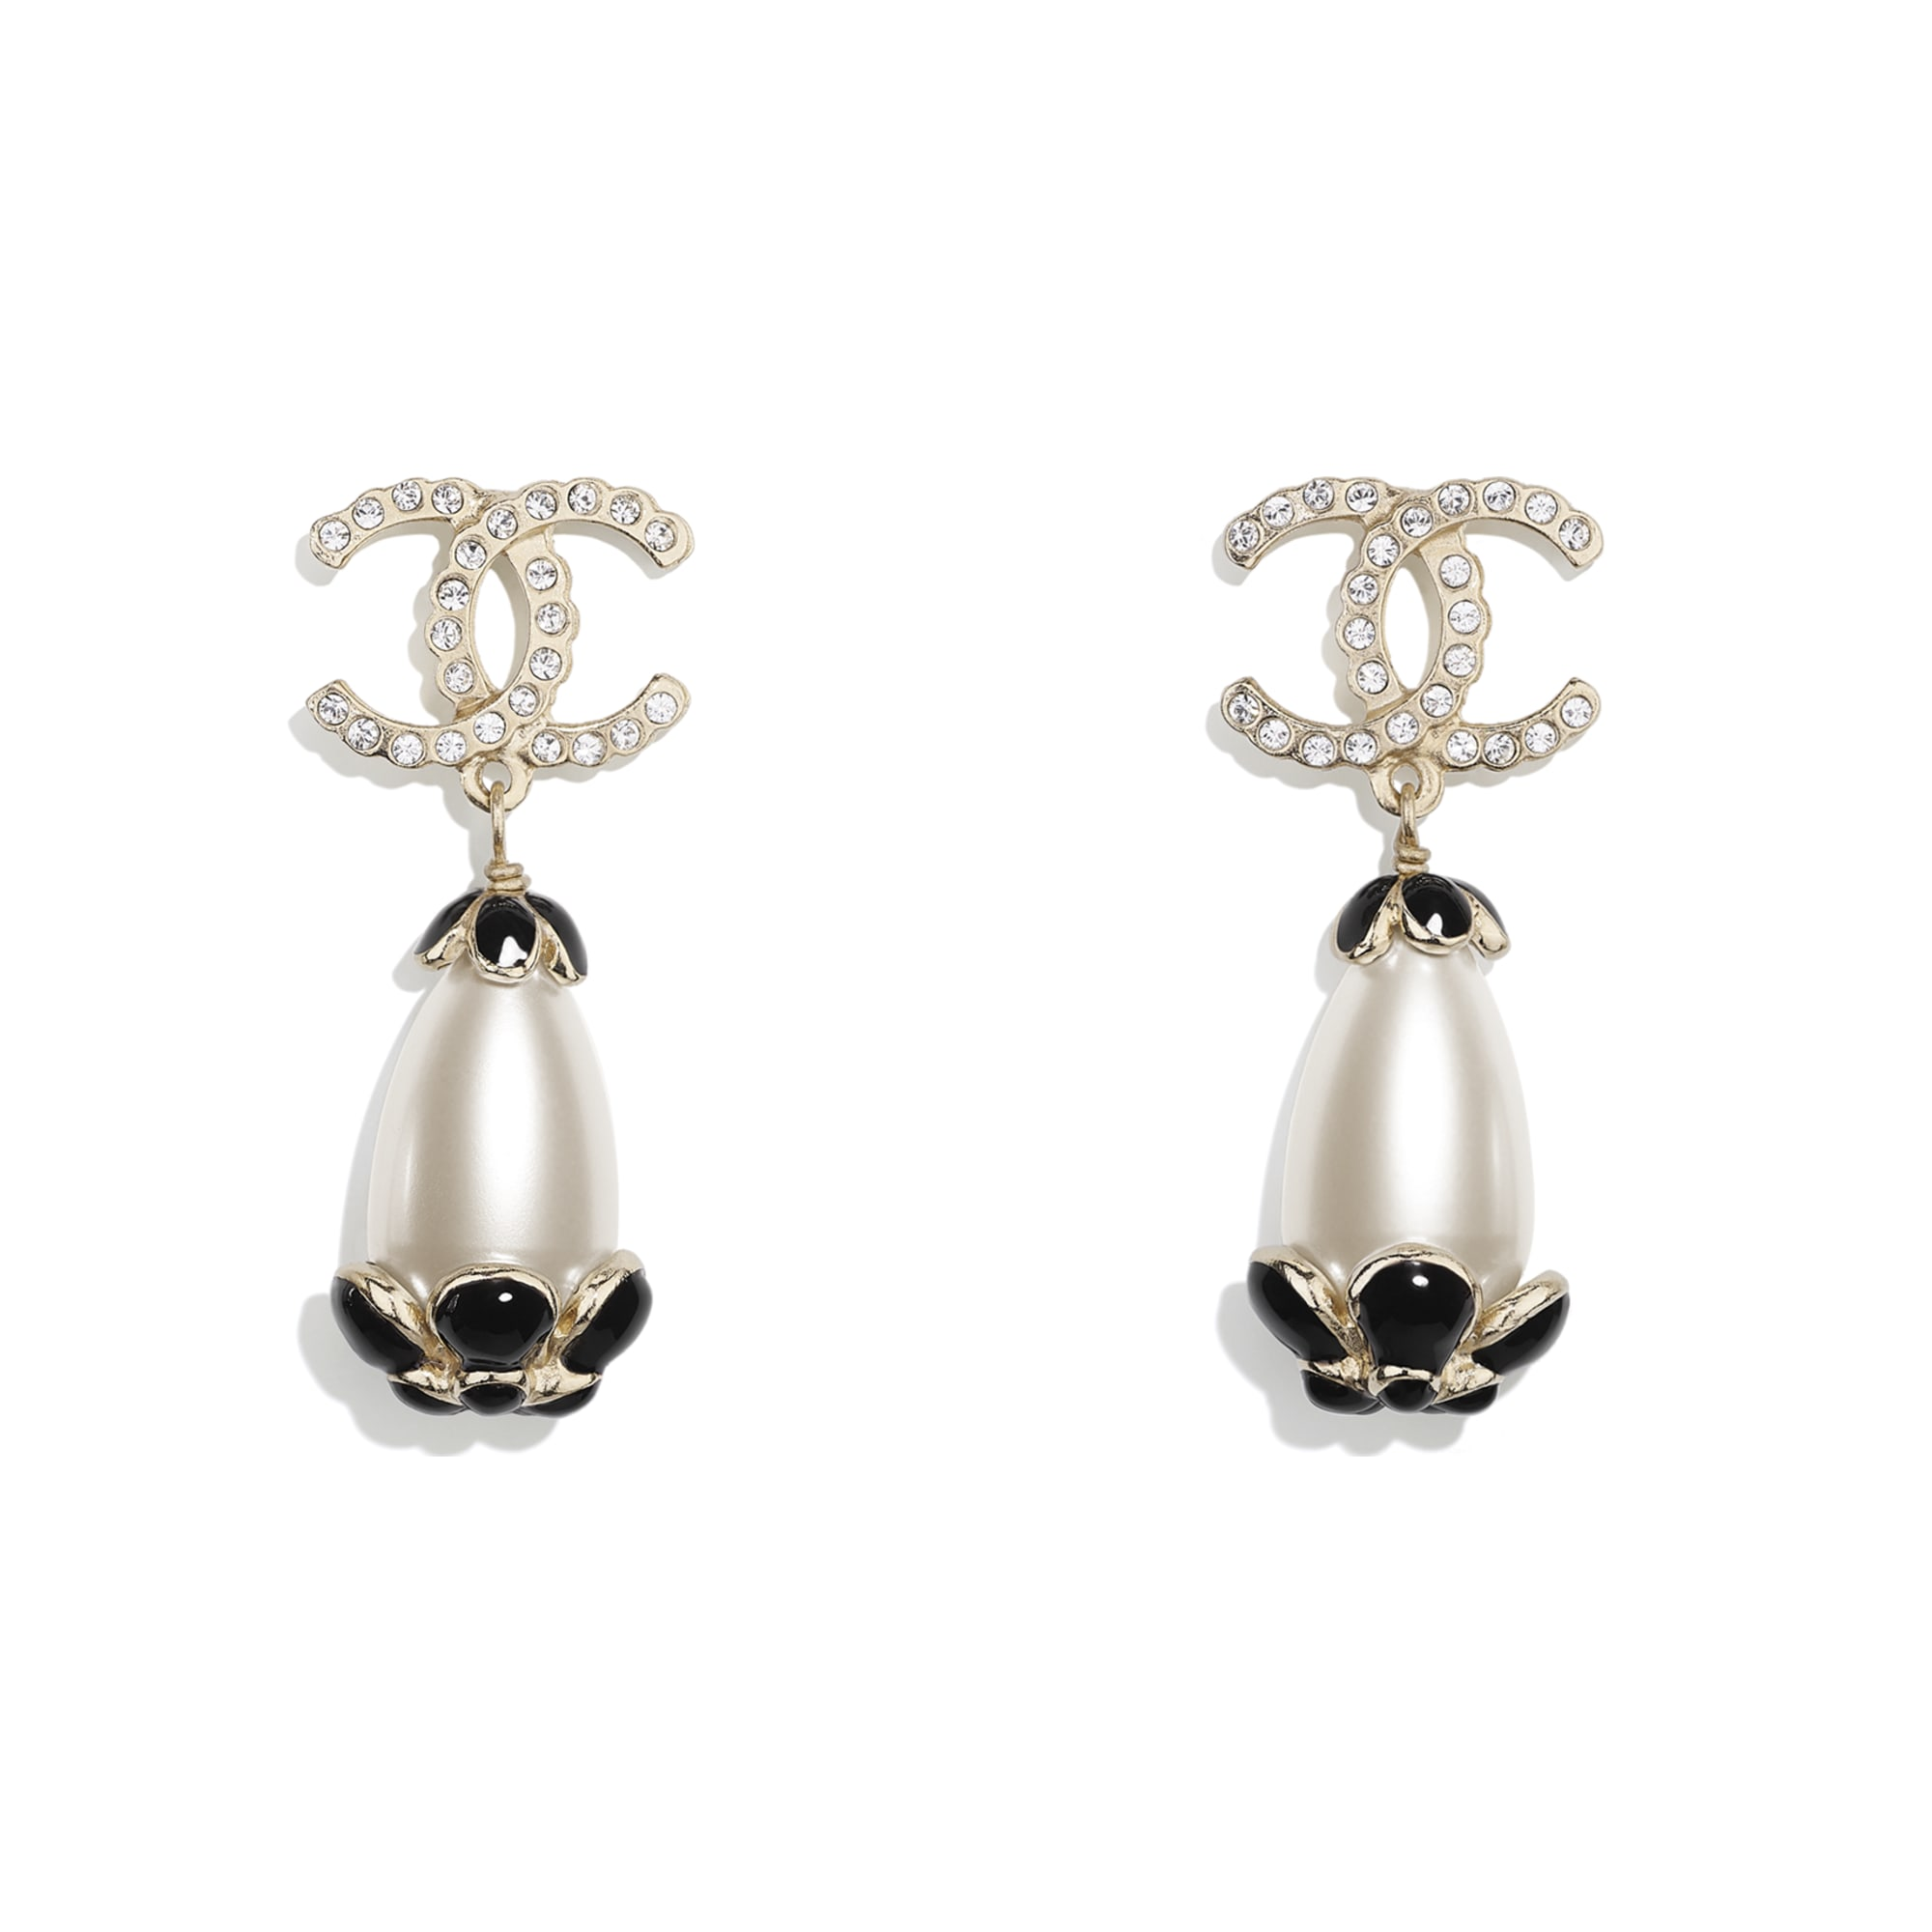 Clip-on Earrings - Gold, Pearly White, Crystal & Black - Metal, Strass & Resin - CHANEL - Default view - see standard sized version